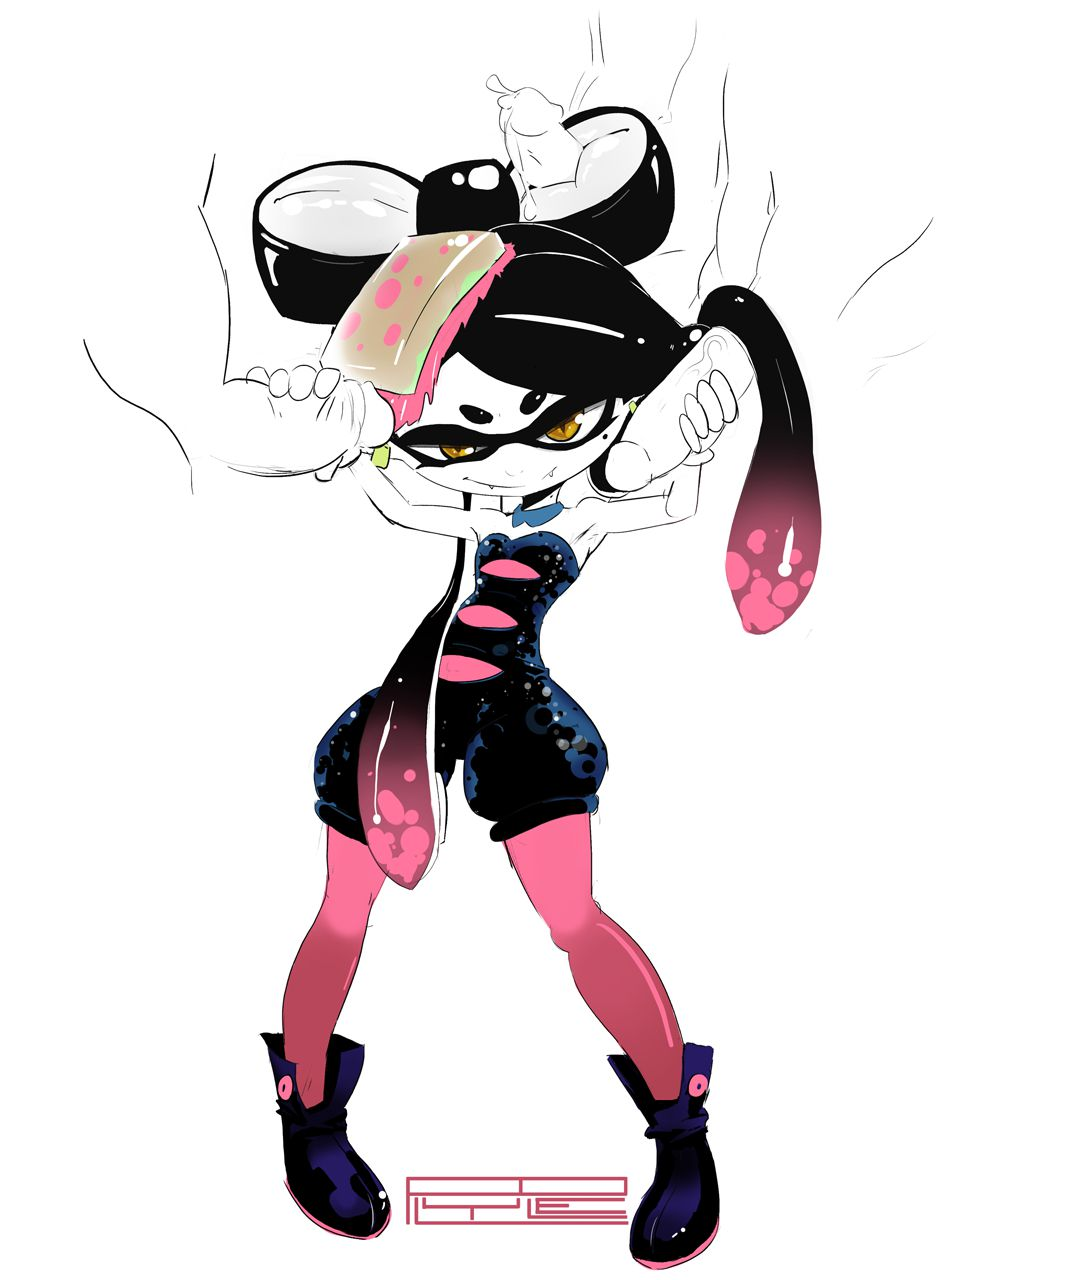 callie_(splatoon)037